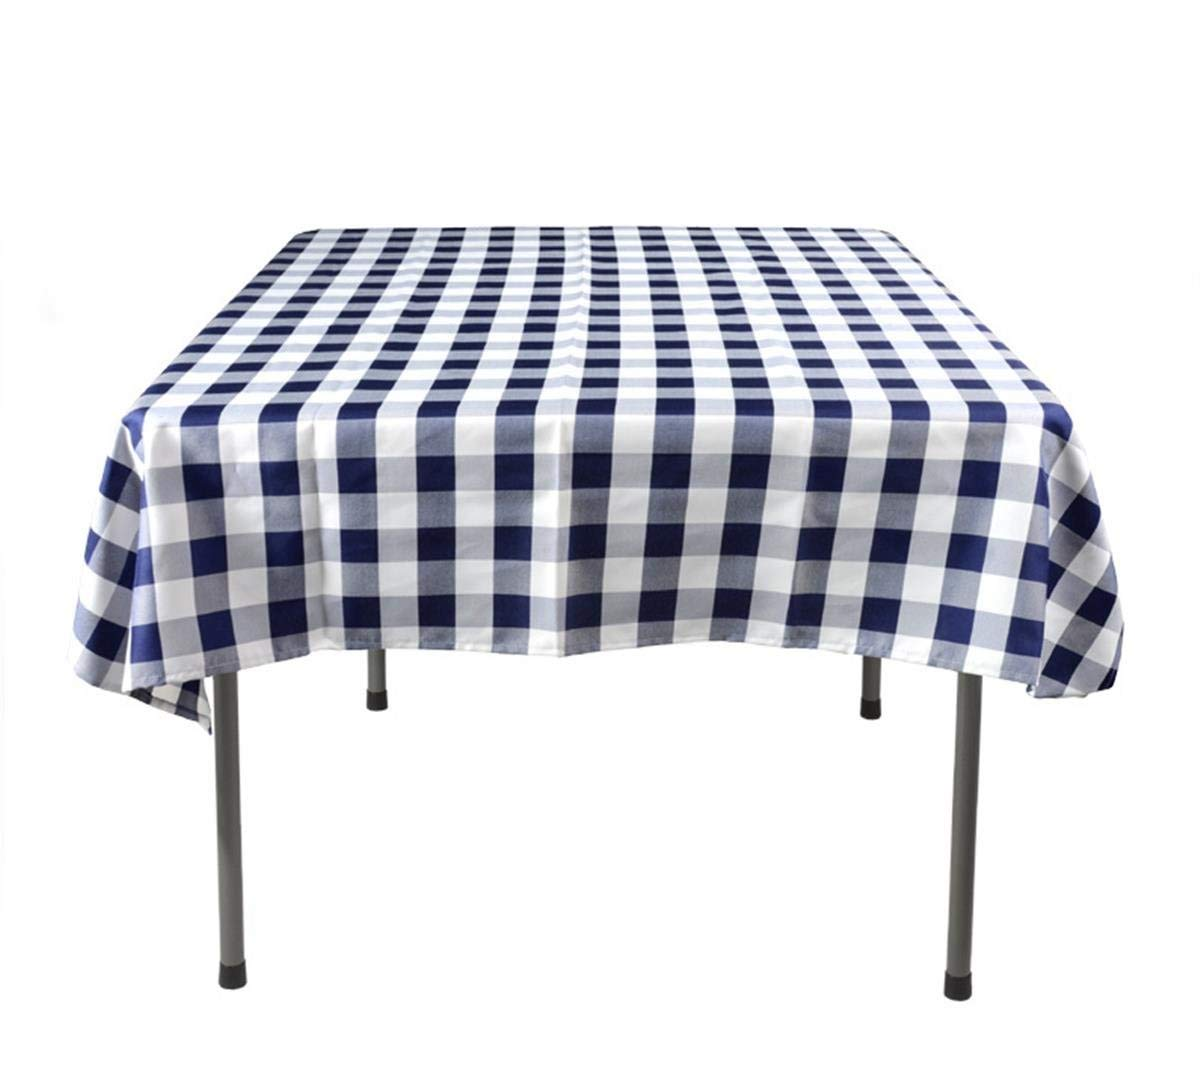 Displays2go Checkered Tablecloths, 100% Polyester, 54-inch Square Table Covers for 3-foot Tables - Sold in Sets of 5